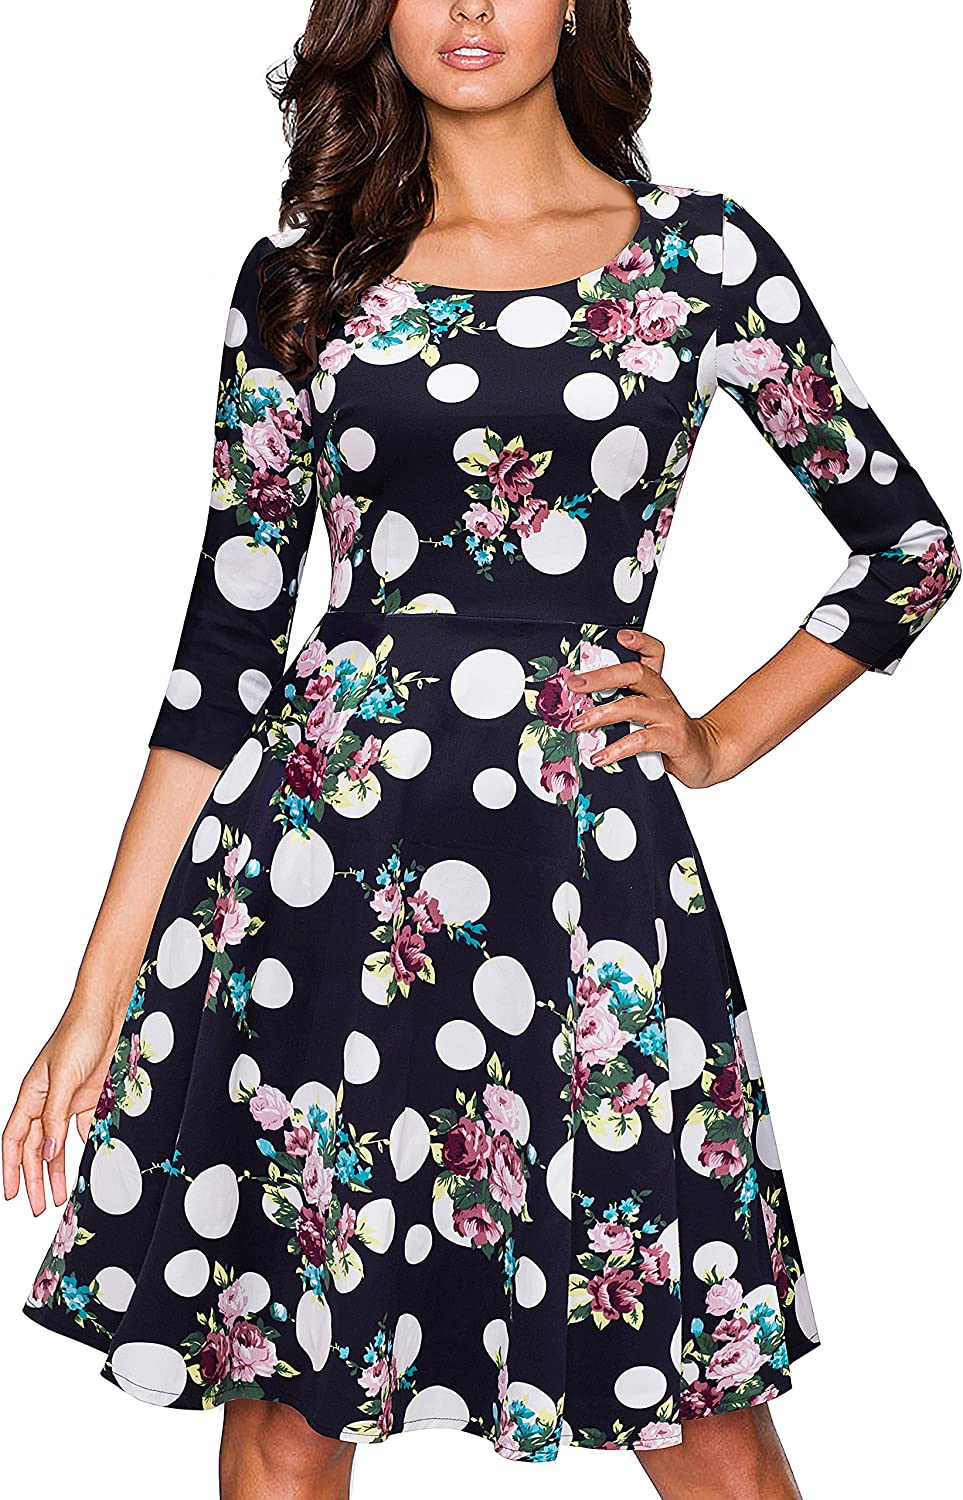 VELJIE Women's Retro 1950s Style 3/4 Sleeve Floral Print Flare A-line Dress